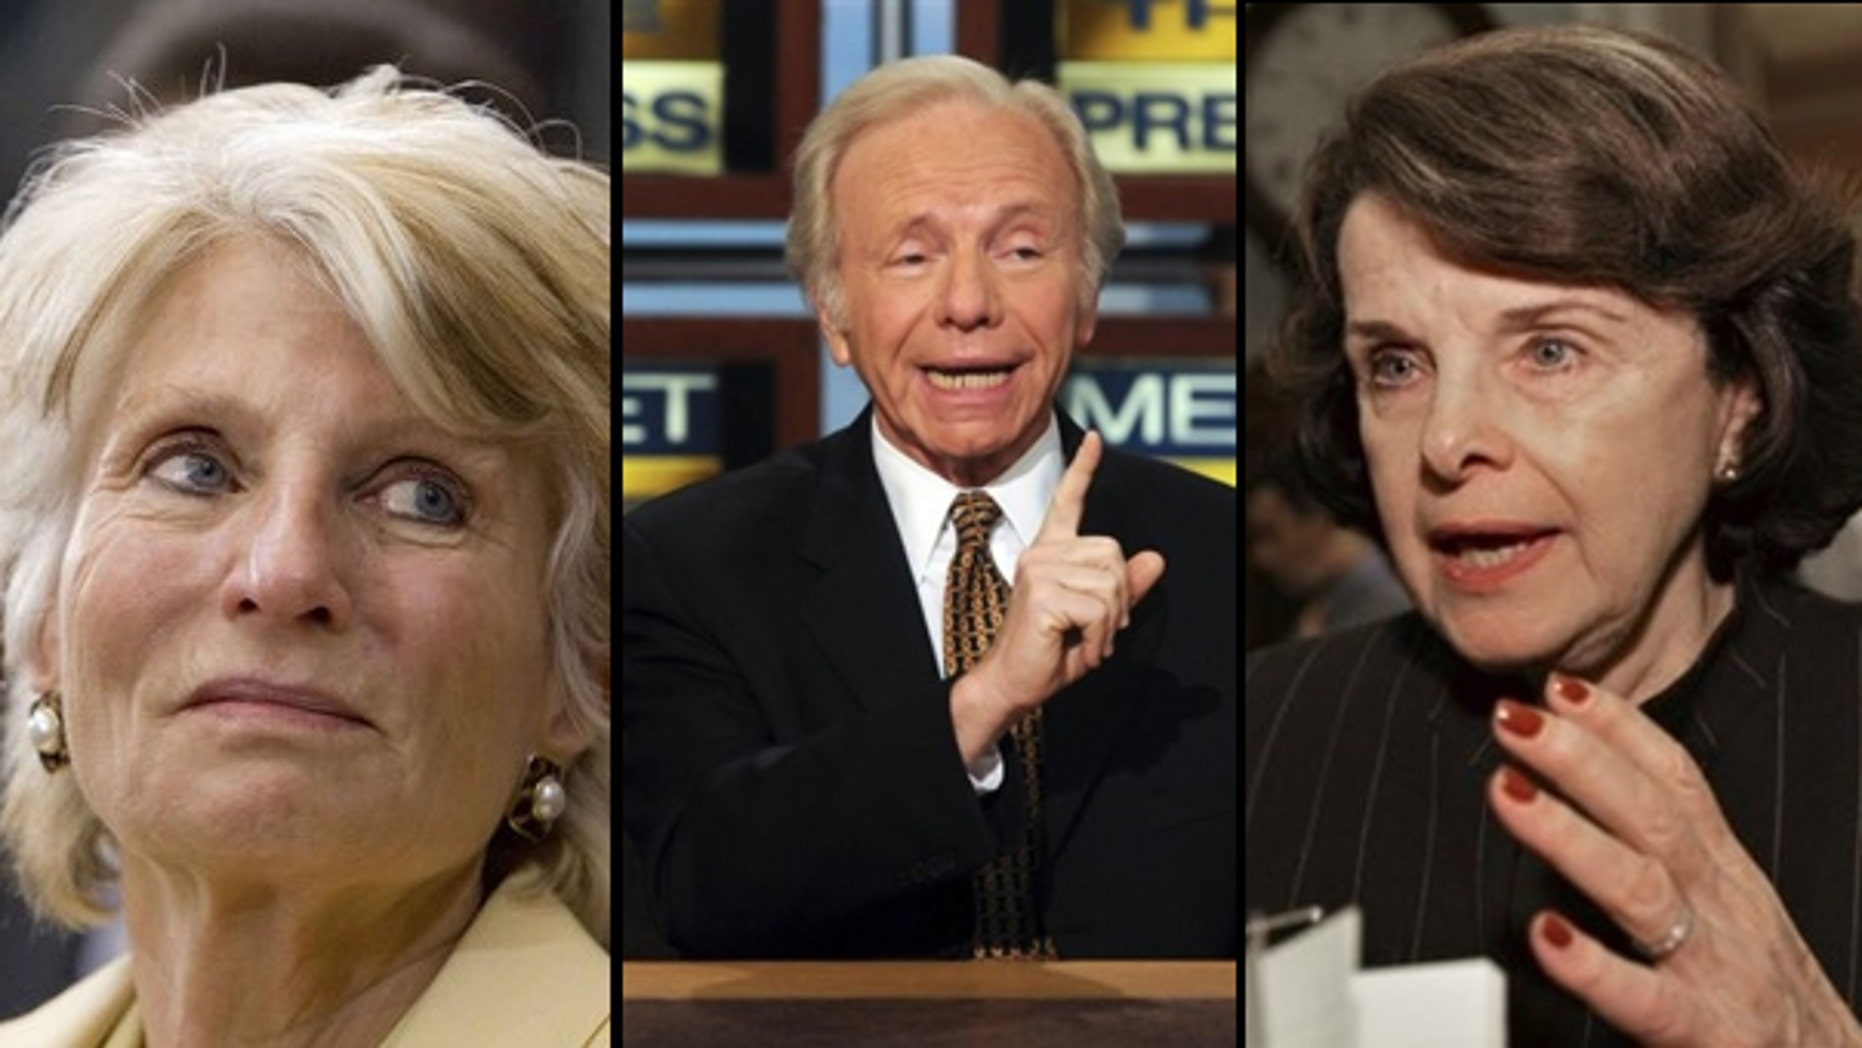 Rep. Jane Harman, Sens. Joe Lieberman and Dianne Feinstein are just three lawmakers who have joined GOP opposition to sending Gitmo transfers to Yemen.